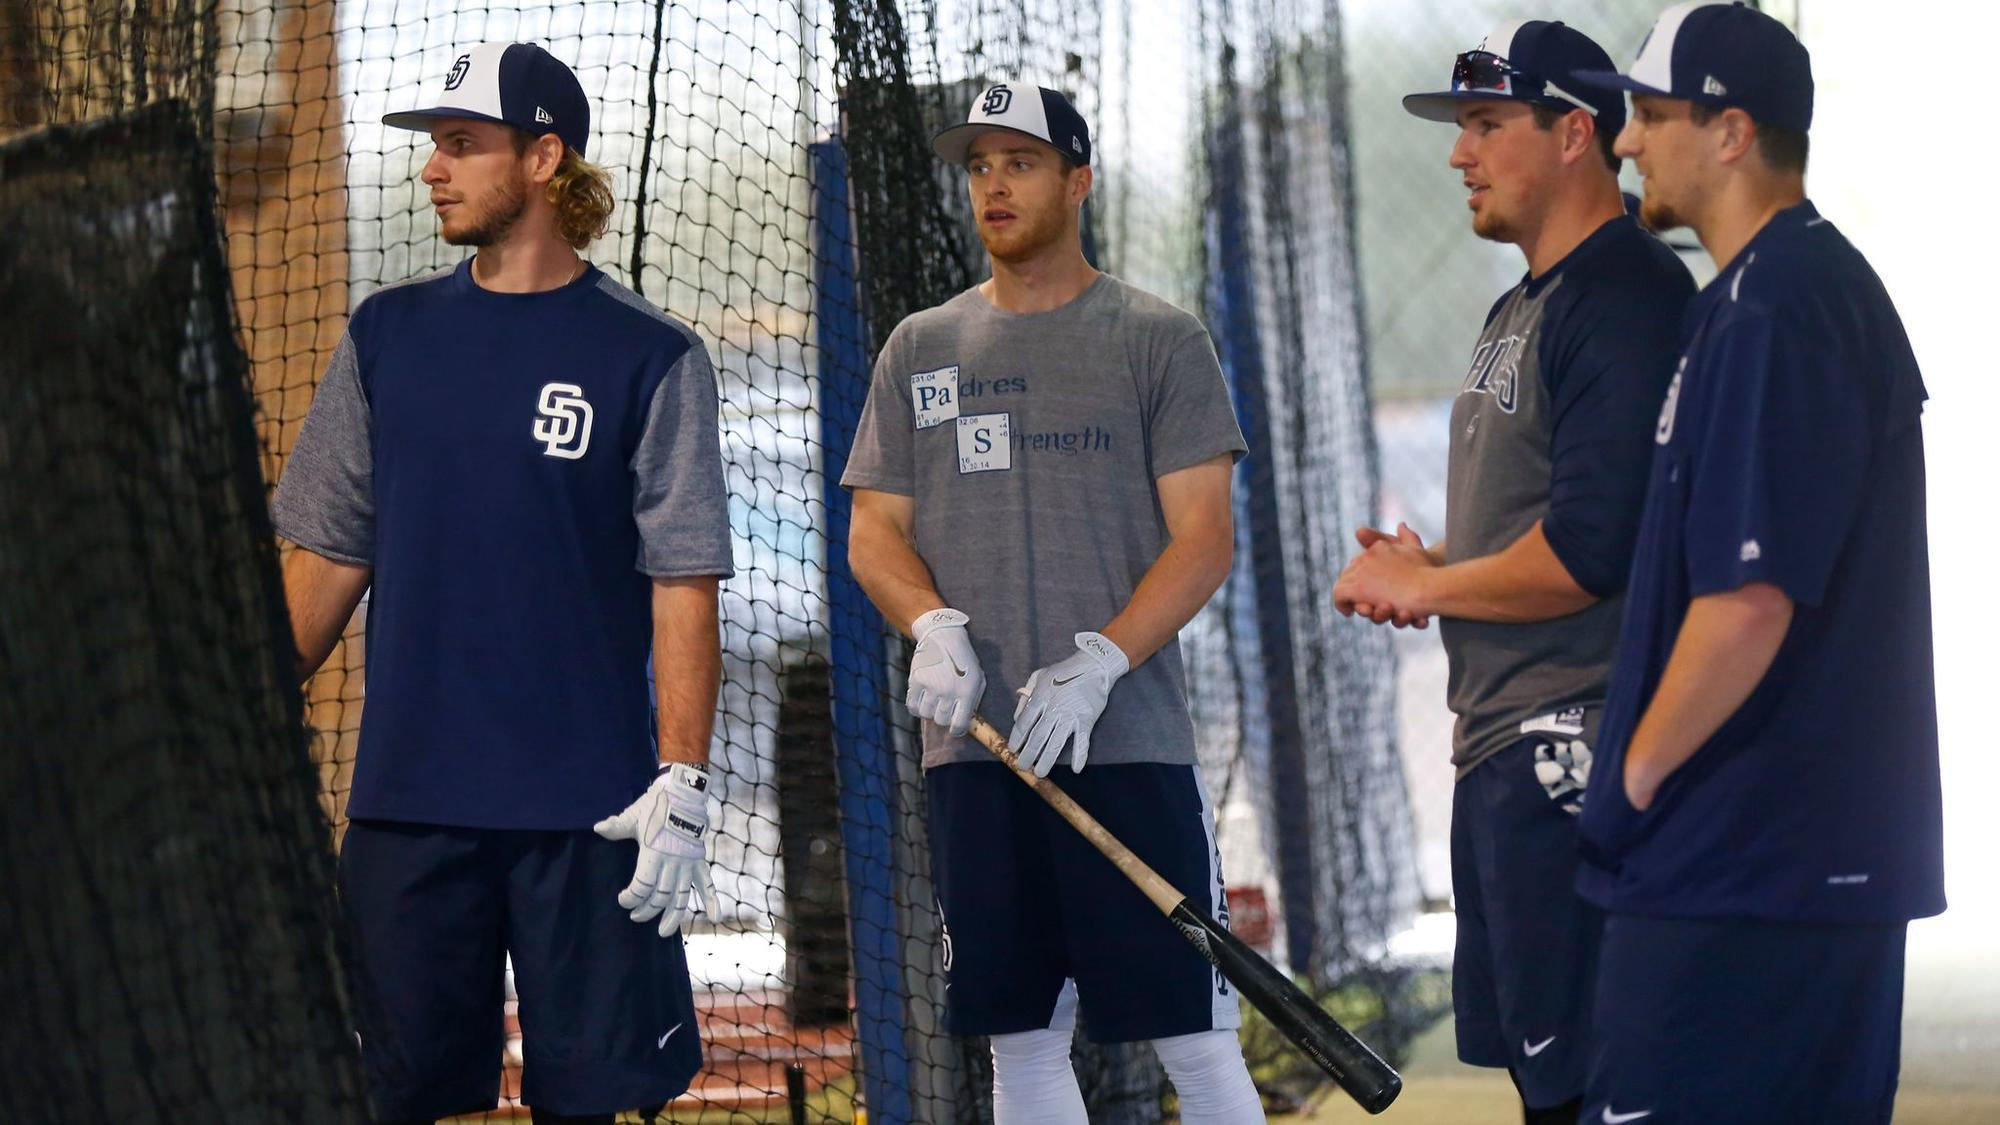 Sd-sp-padres-outfield-battle-to-intensify-as-myers-leaves-first-base-behind-20180218